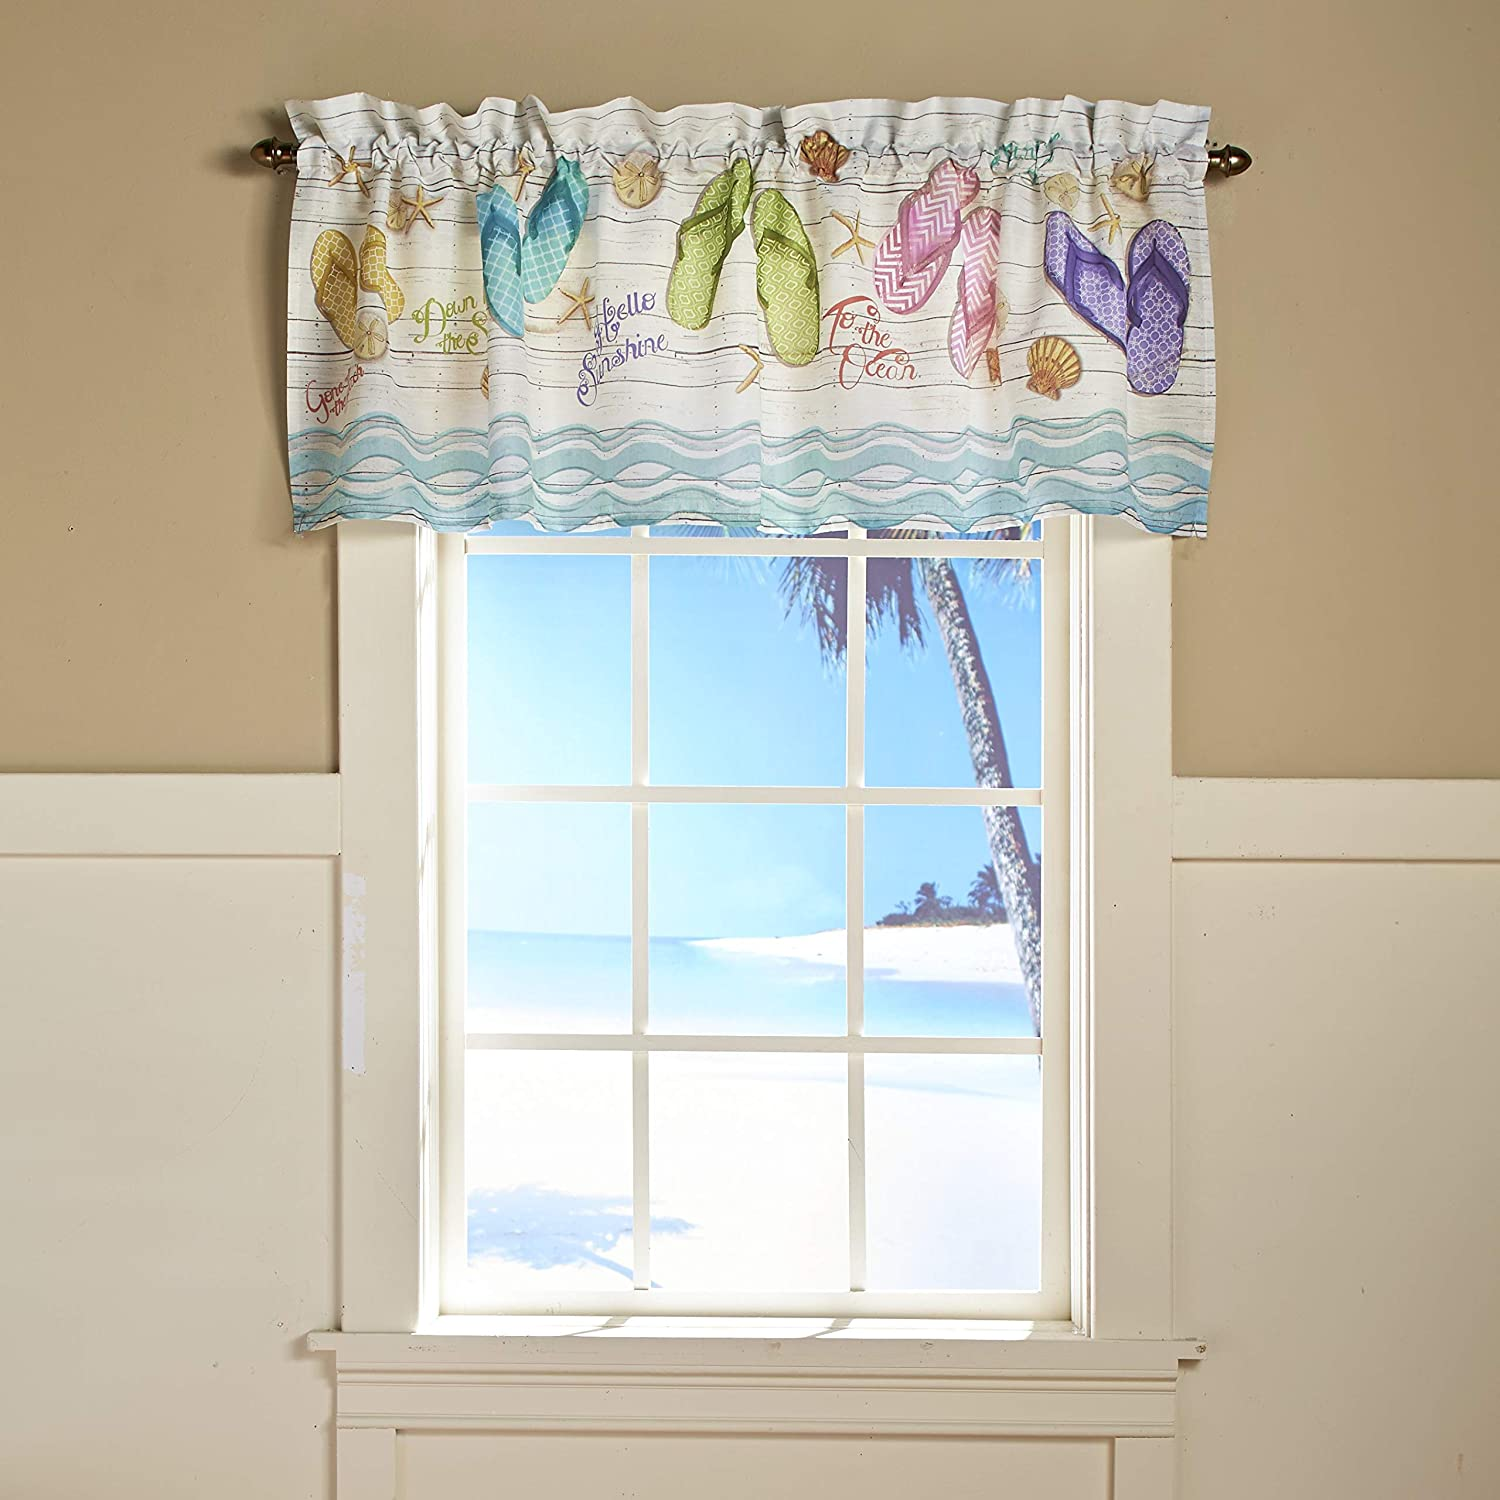 The Lakeside Collection Flip Flop Beach Theme Bathroom And Kitchen Window Valance With Pocket Home Kitchen Amazon Com